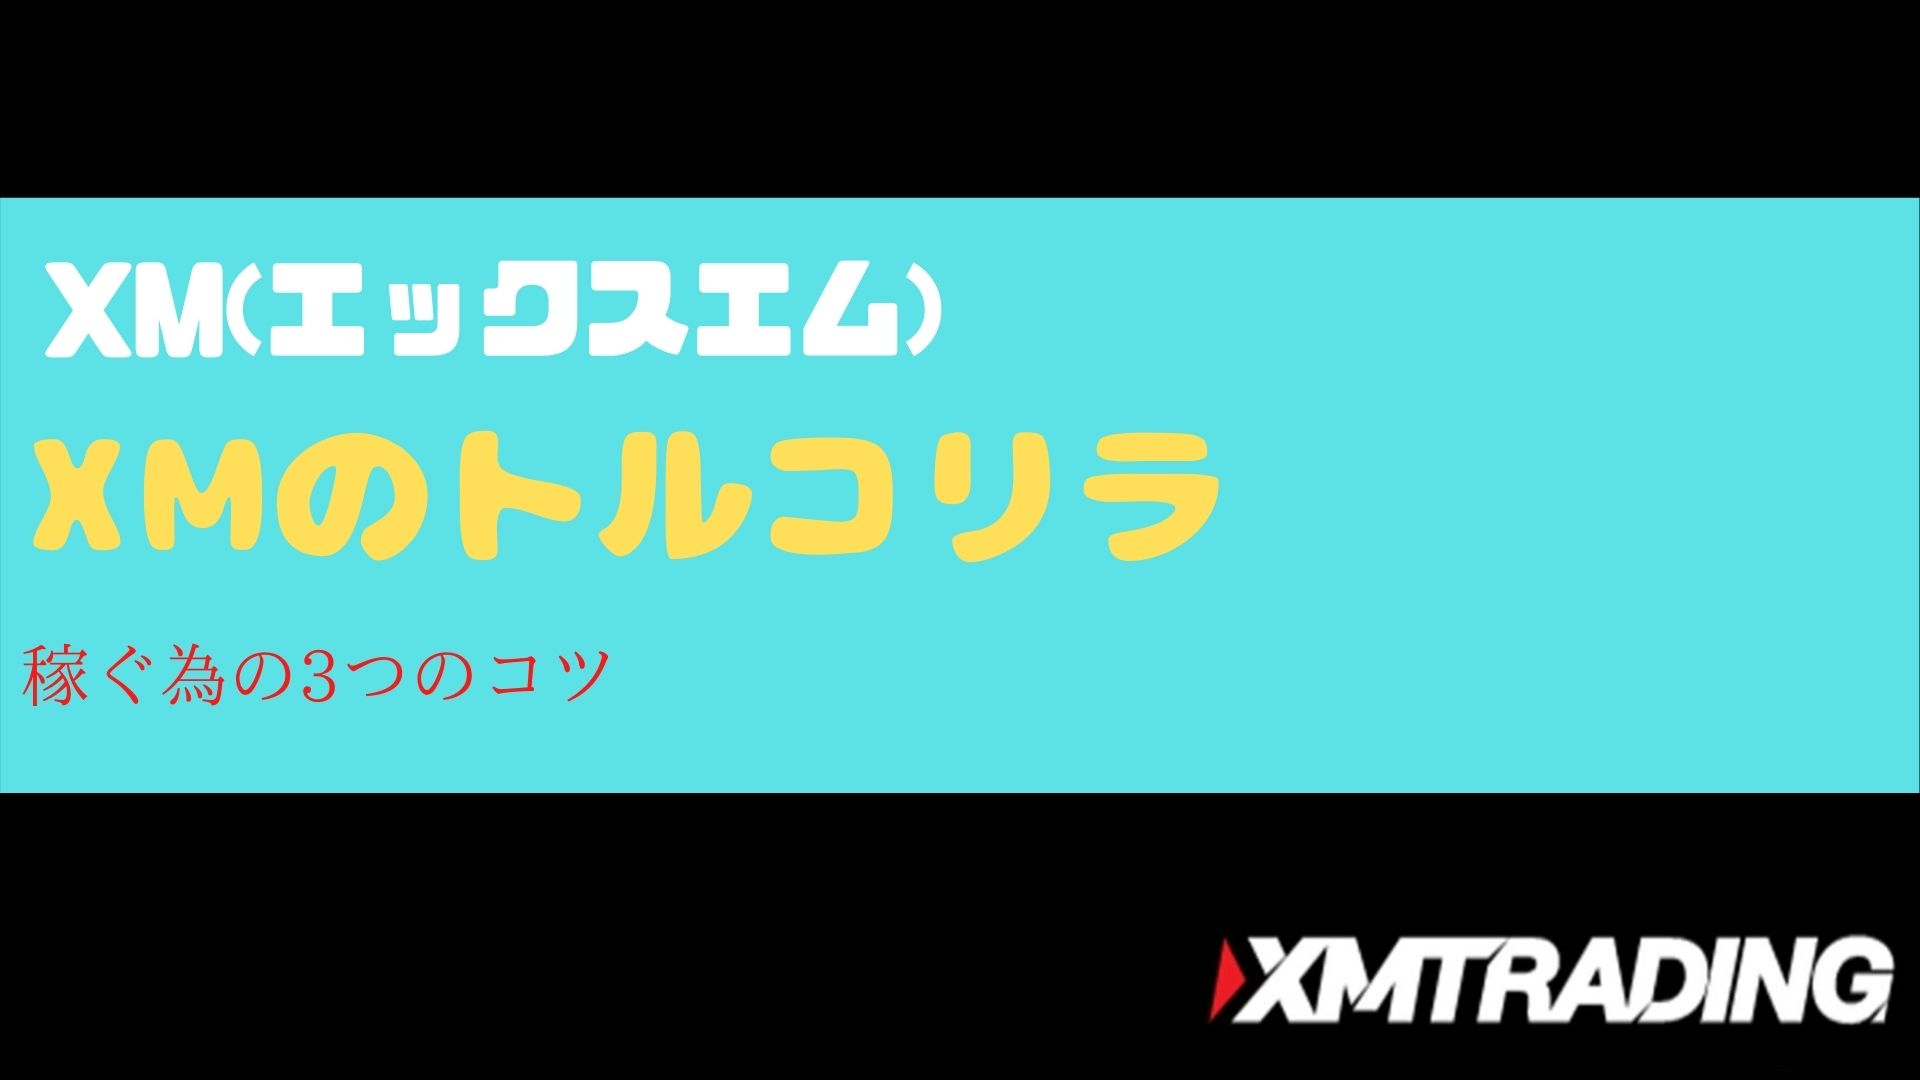 xm-try-title